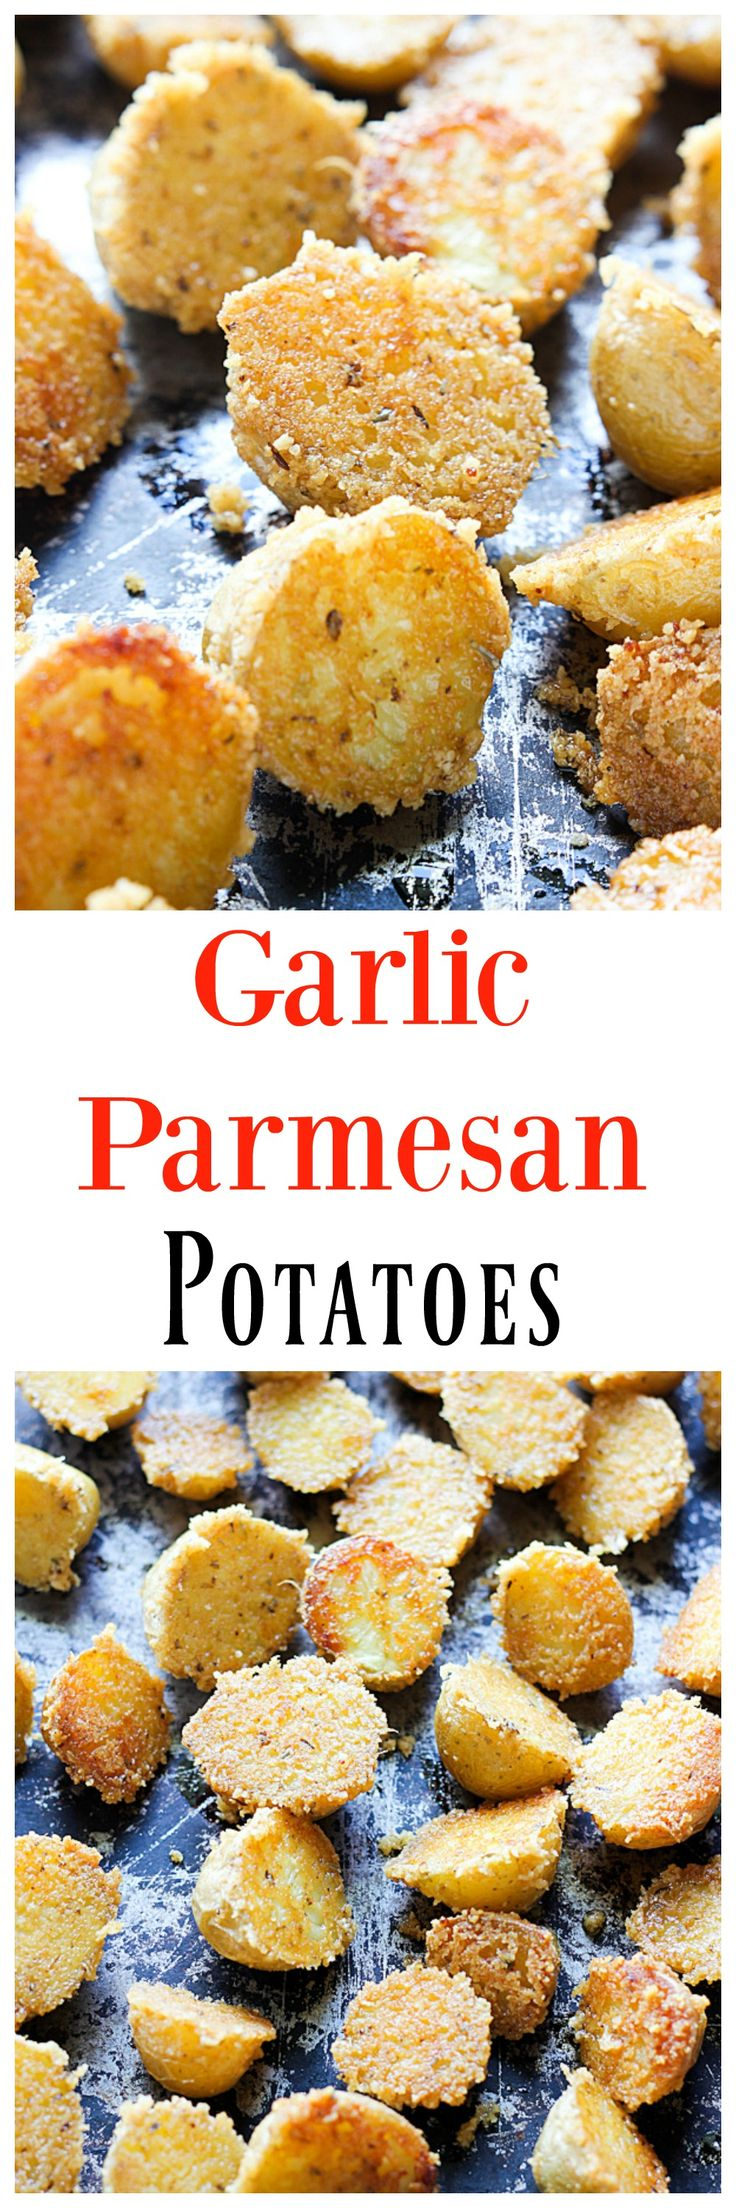 These Garlic Parmesan Potatoes are an easy and addicting side dish that your whole family will love. Who can resist baby potatoes?